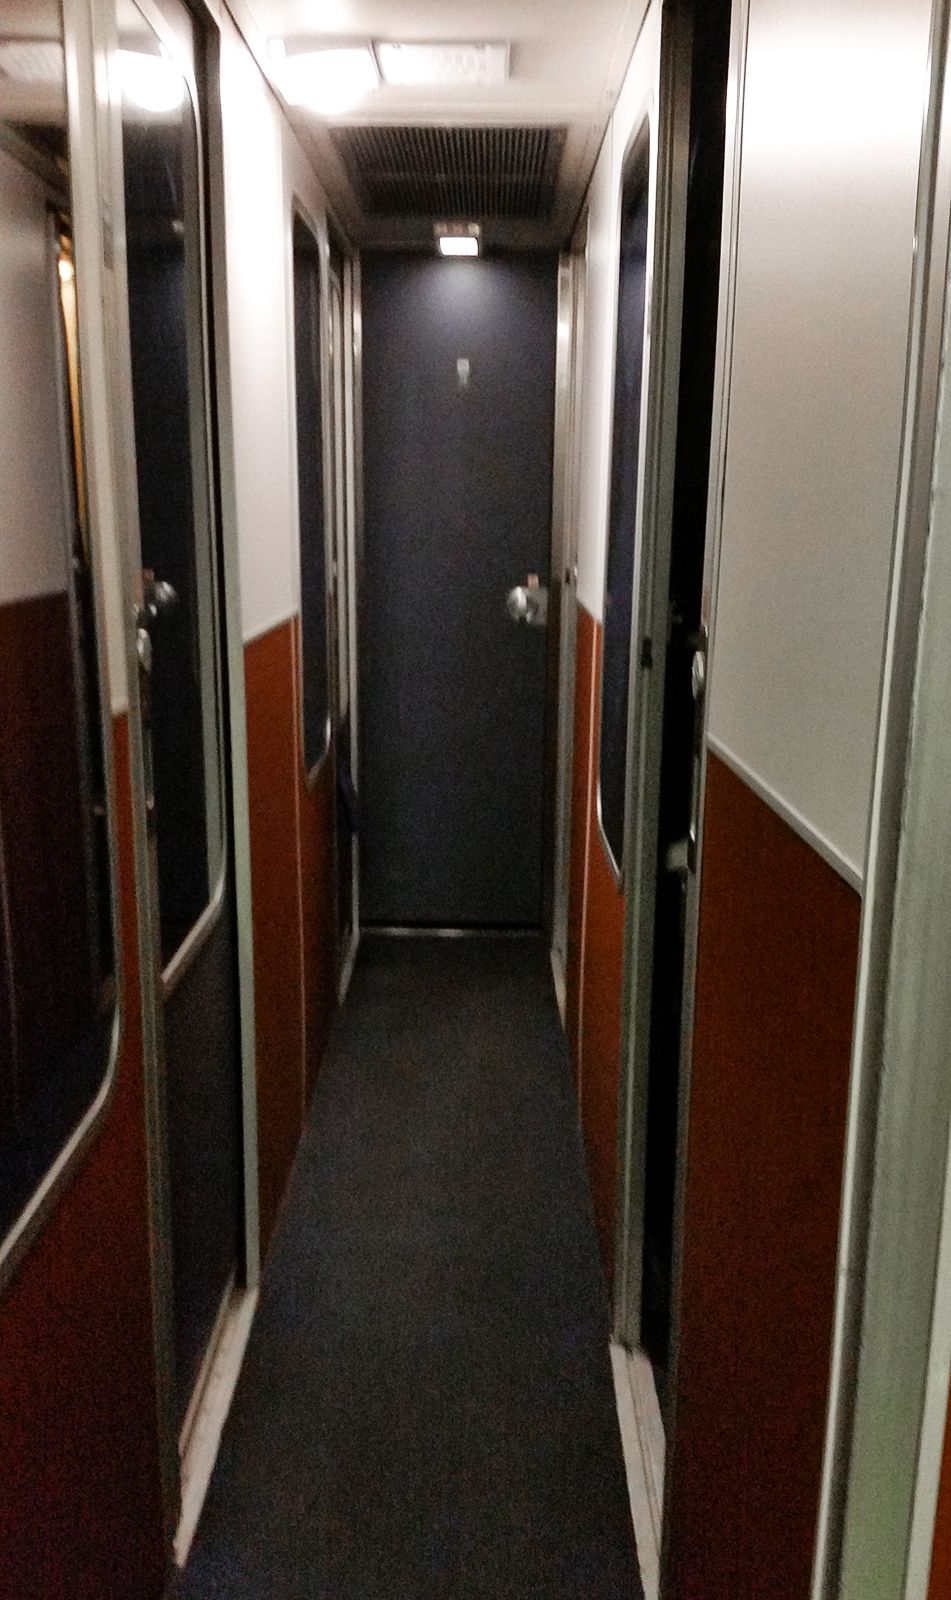 Lower Level Inside An Amtrak Empire Builder Sleeper Car